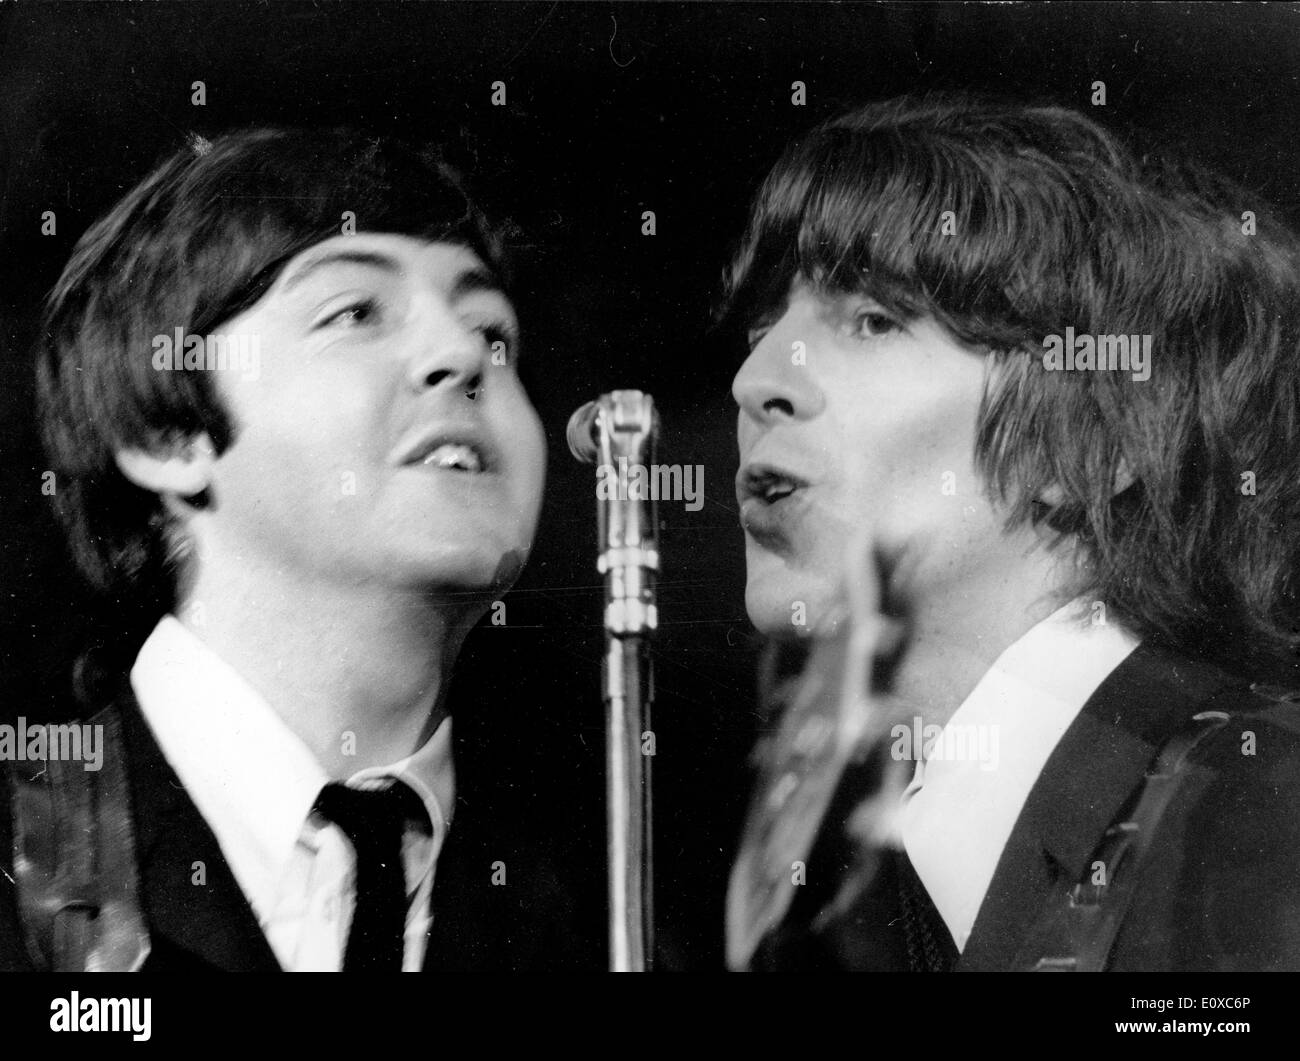 The Beatles Paul McCartney and George Harrison at a concert at Shea Stadium - Stock Image